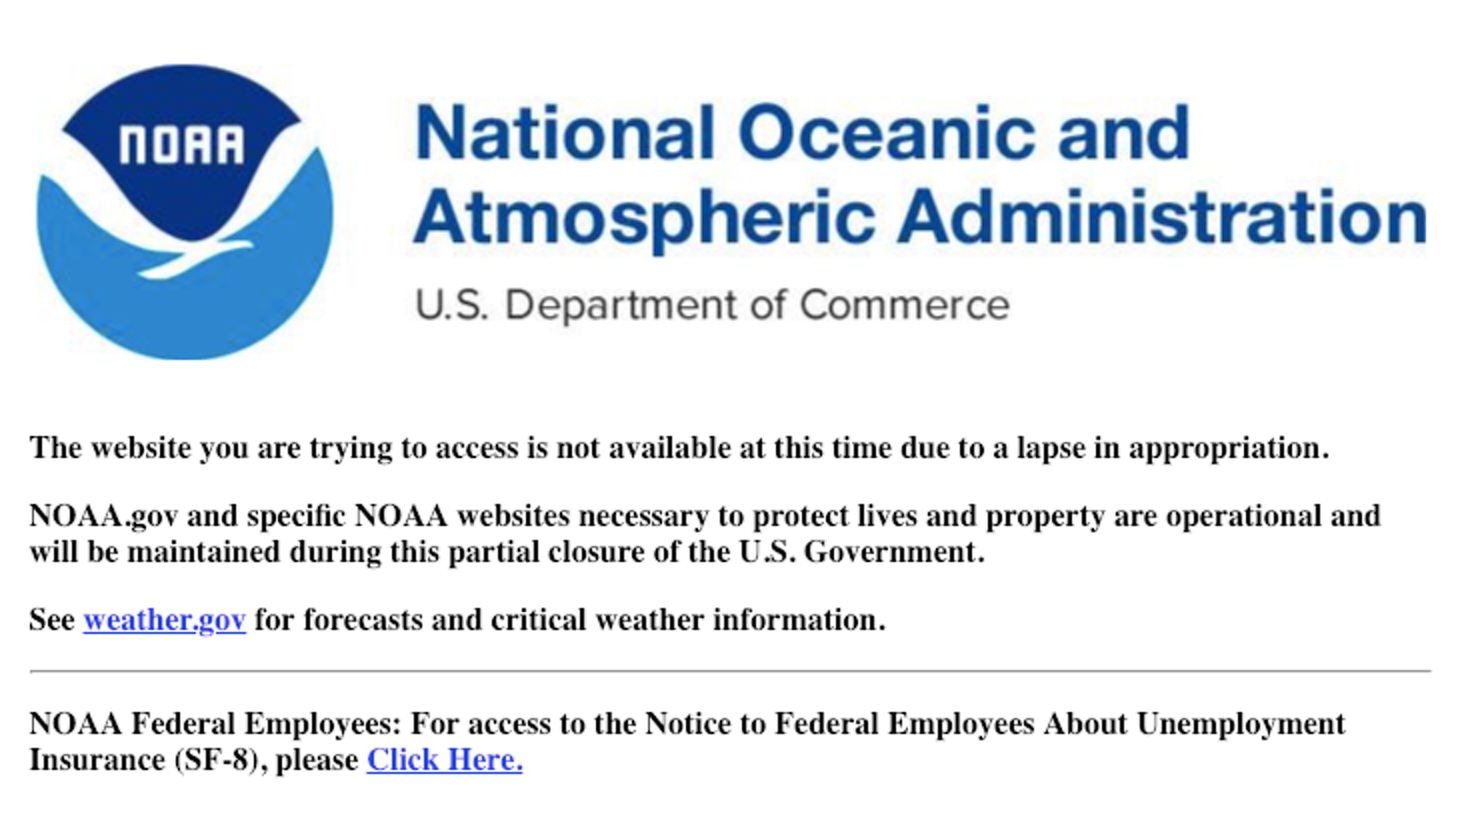 The national oceanic and atmospheric administration page which usually shows that the WMM was offline as of January 11.